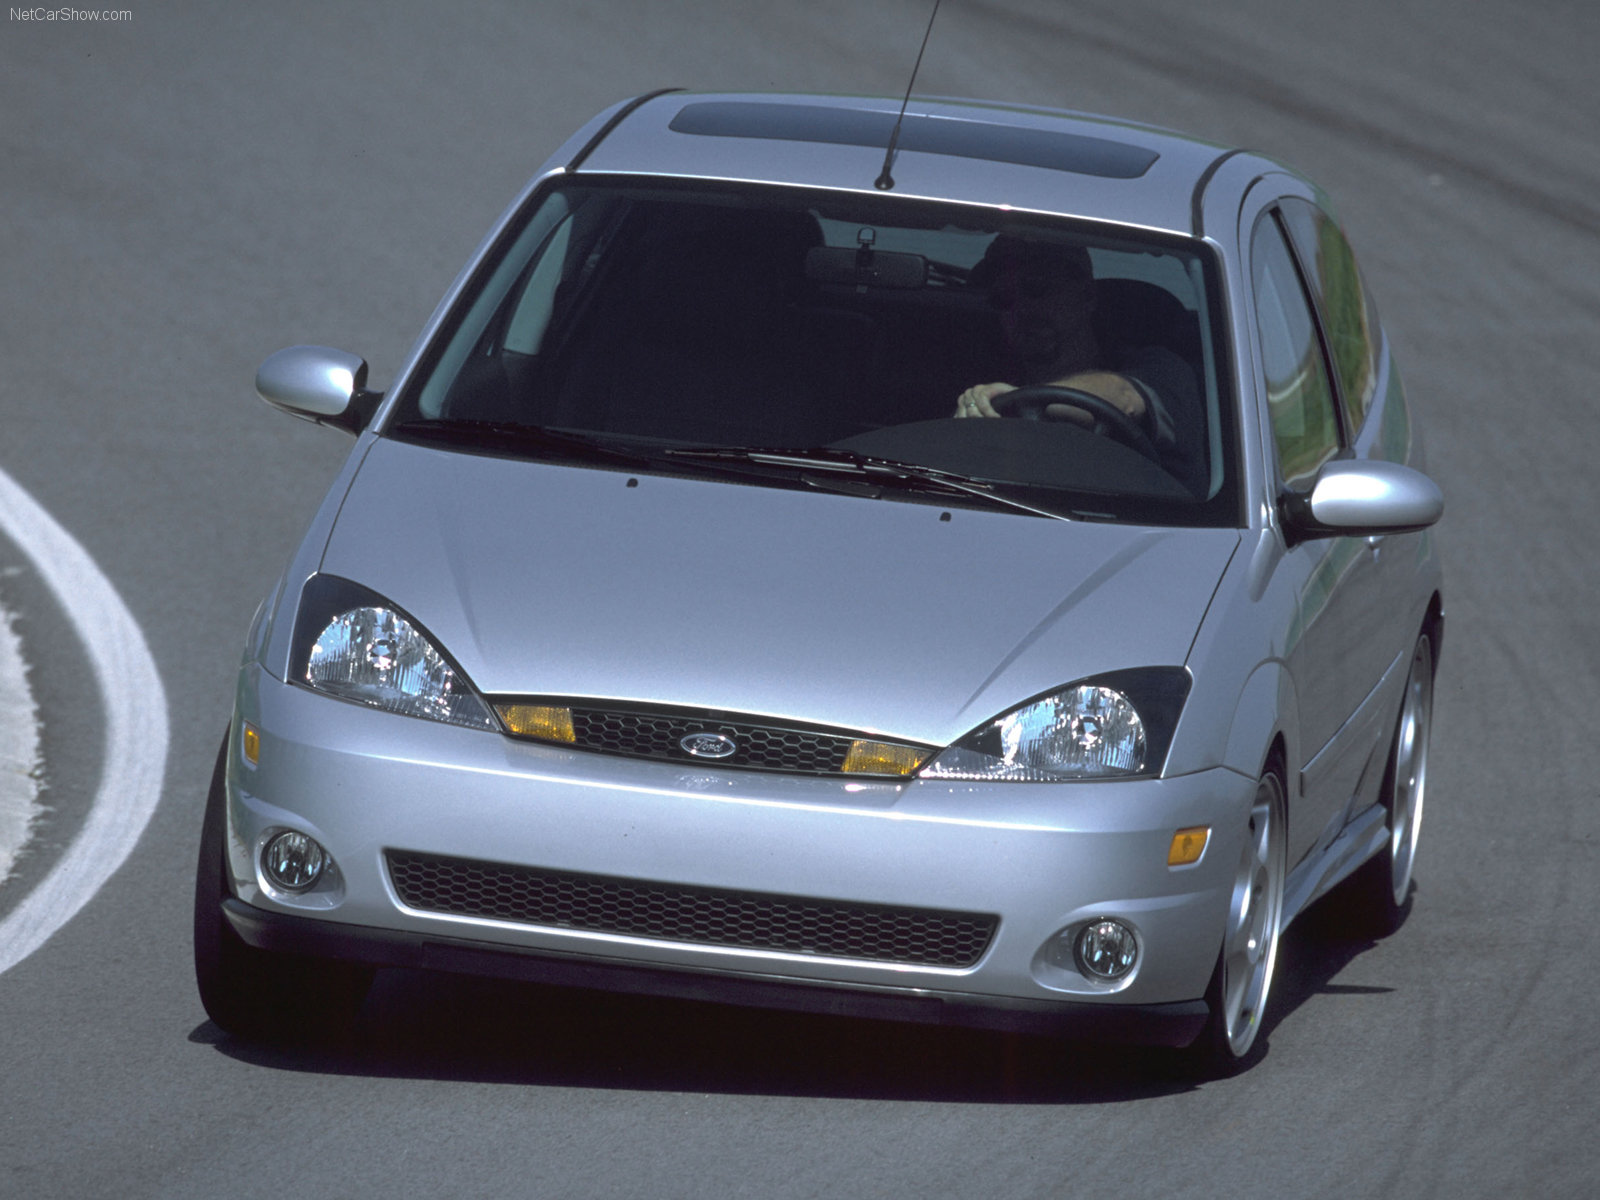 Ford Focus photo 33104